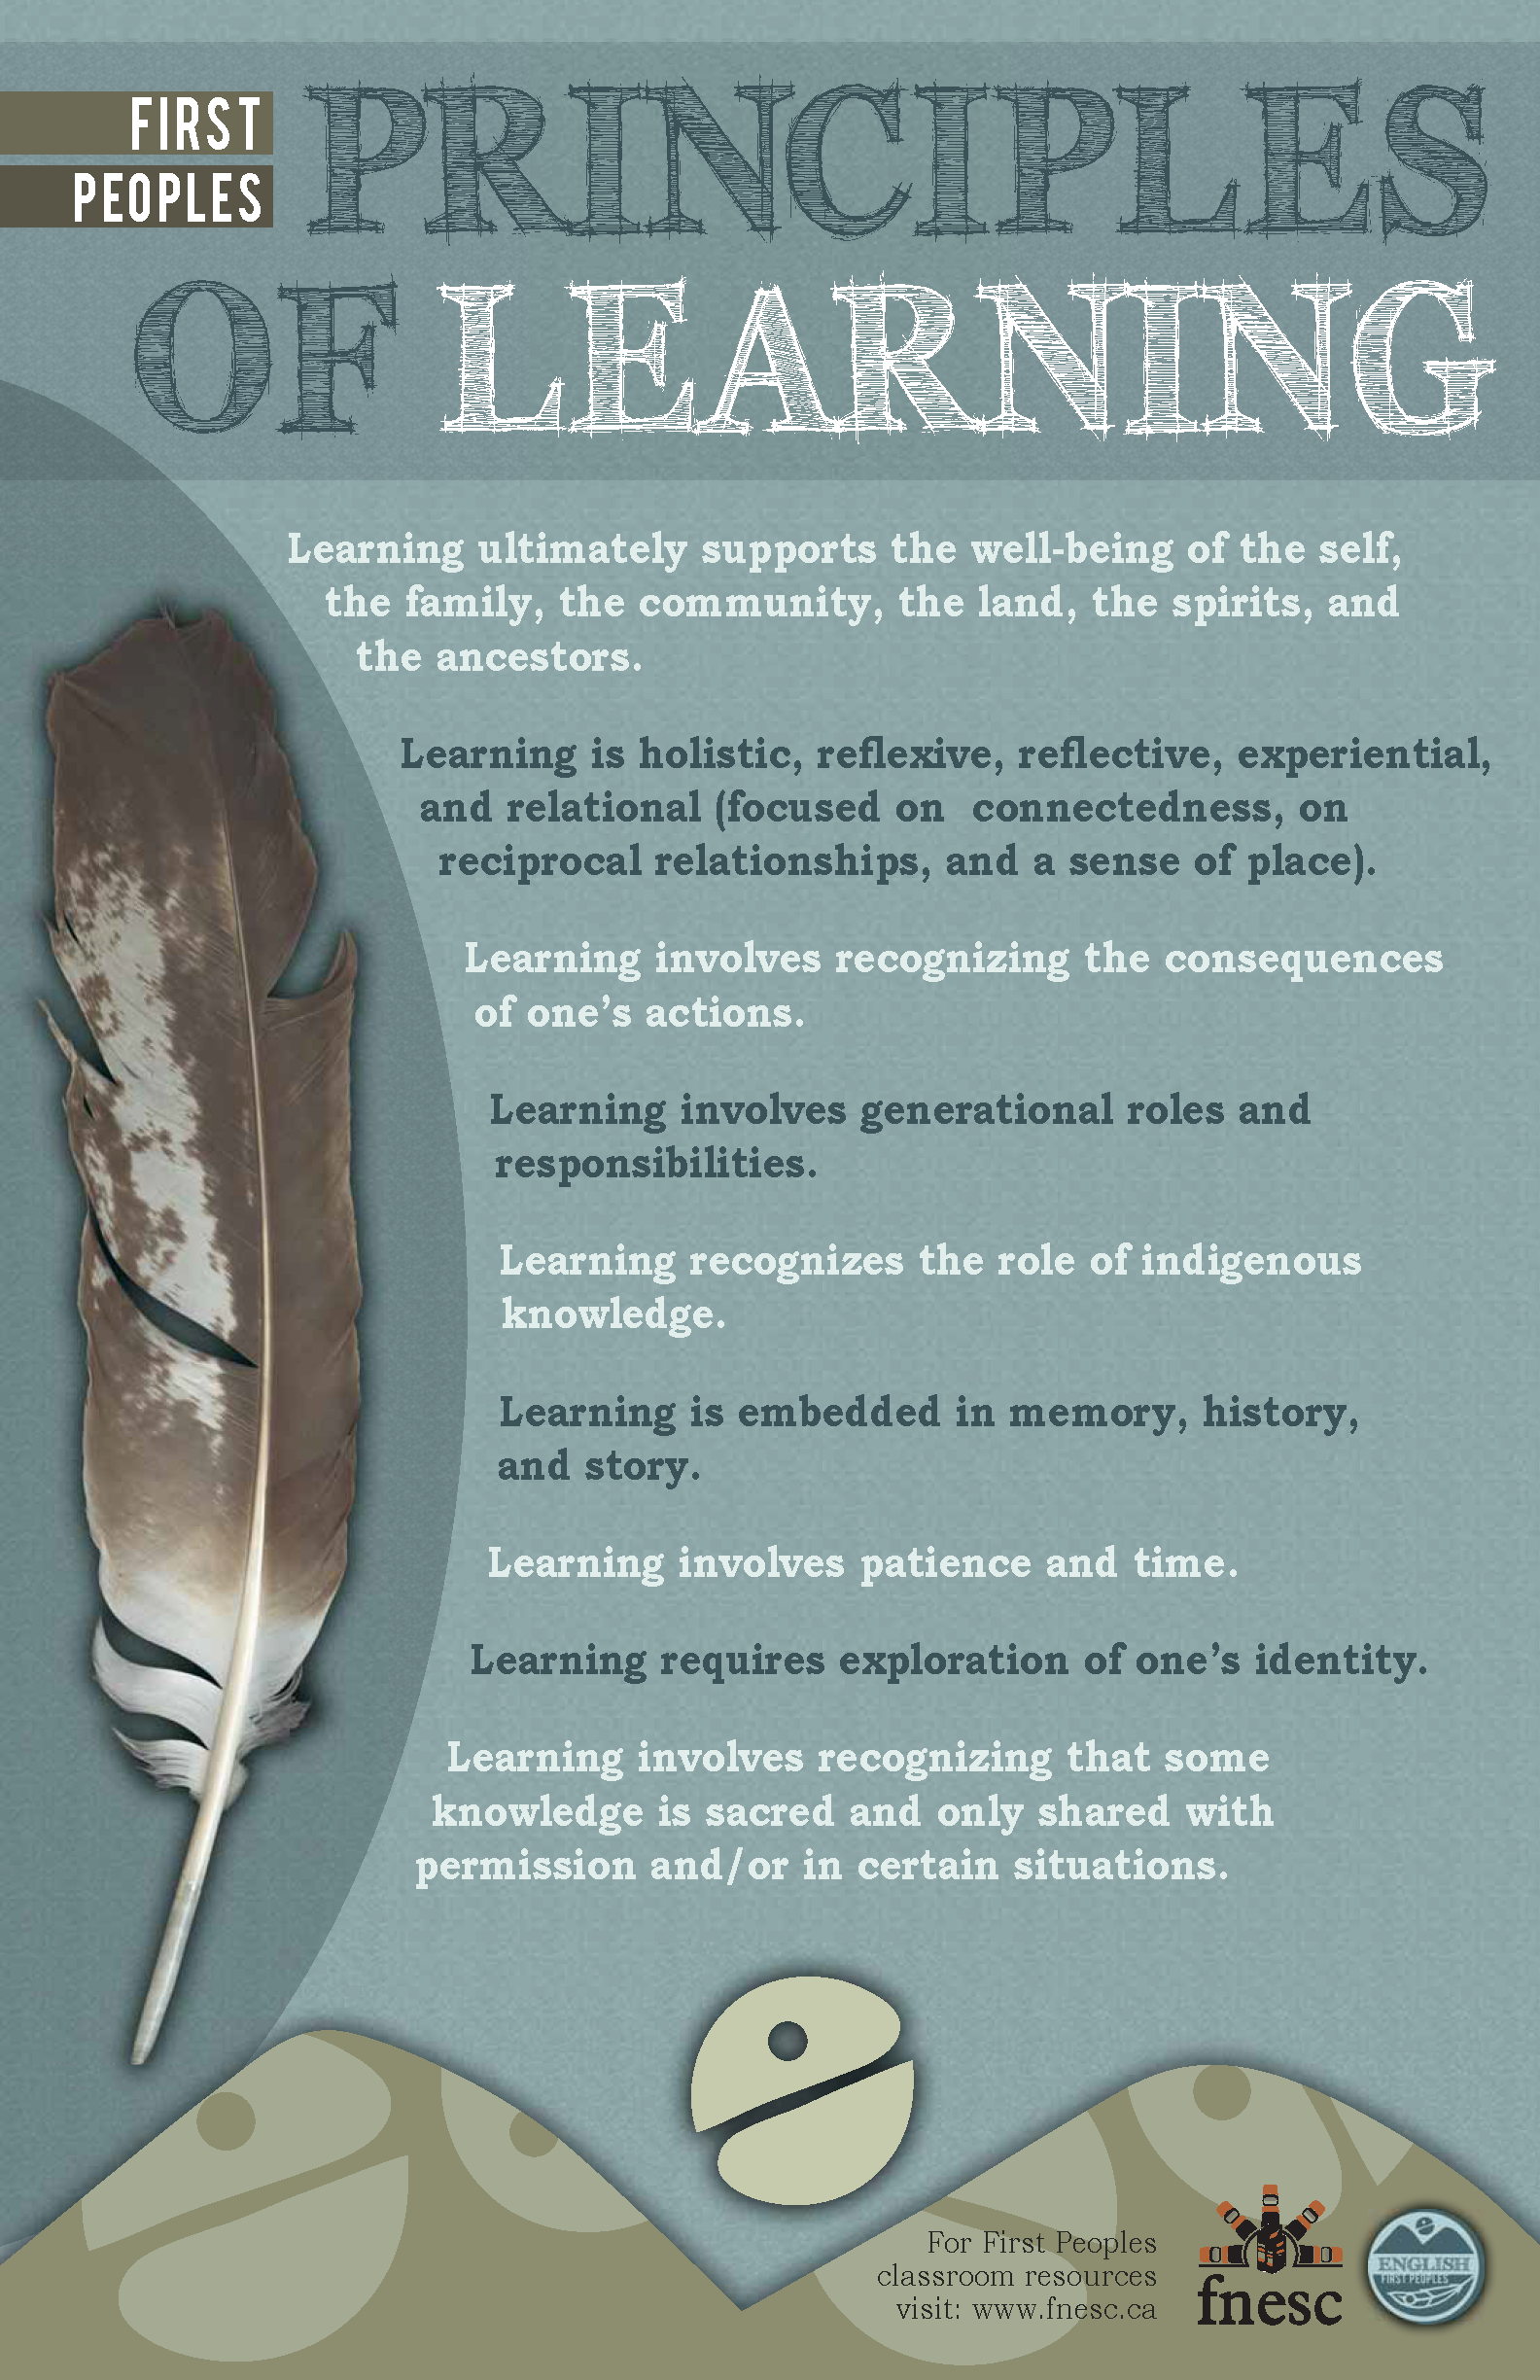 PUB-LFP-POSTER-Principles-of-Learning-First-Peoples-poster-11x17.jpg.png